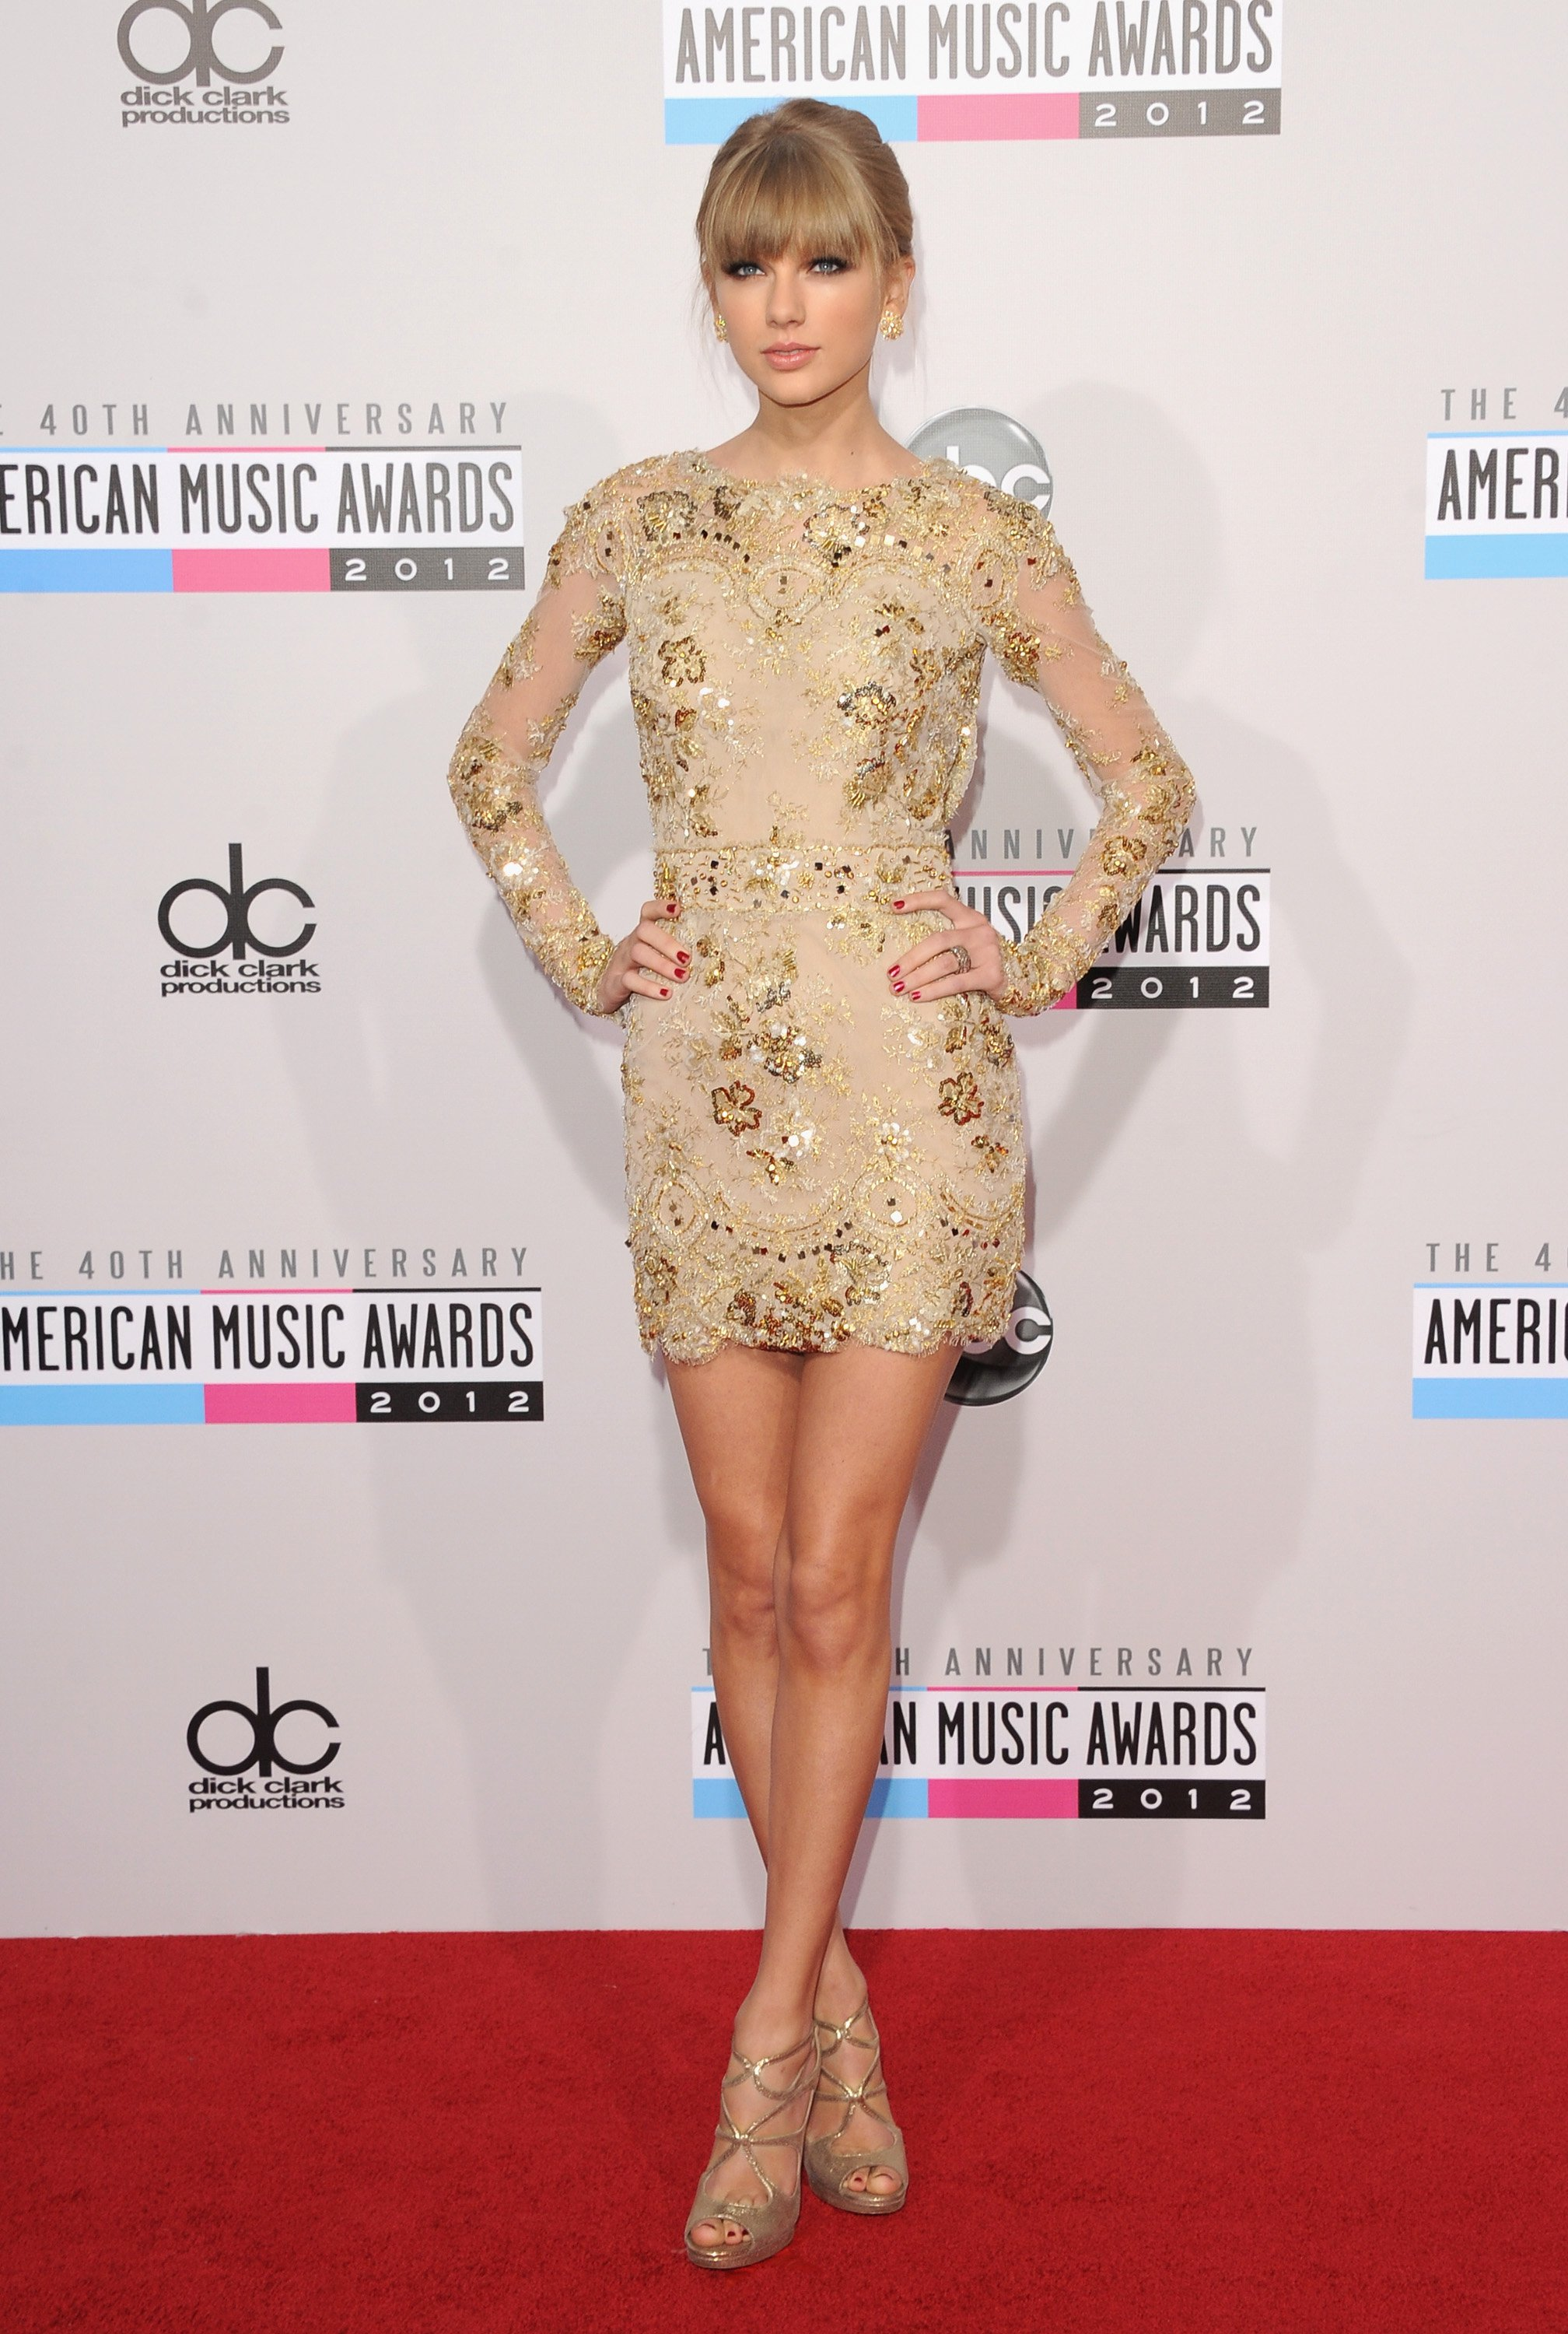 Taylor-Swift-American-Music-Awards-2012-5